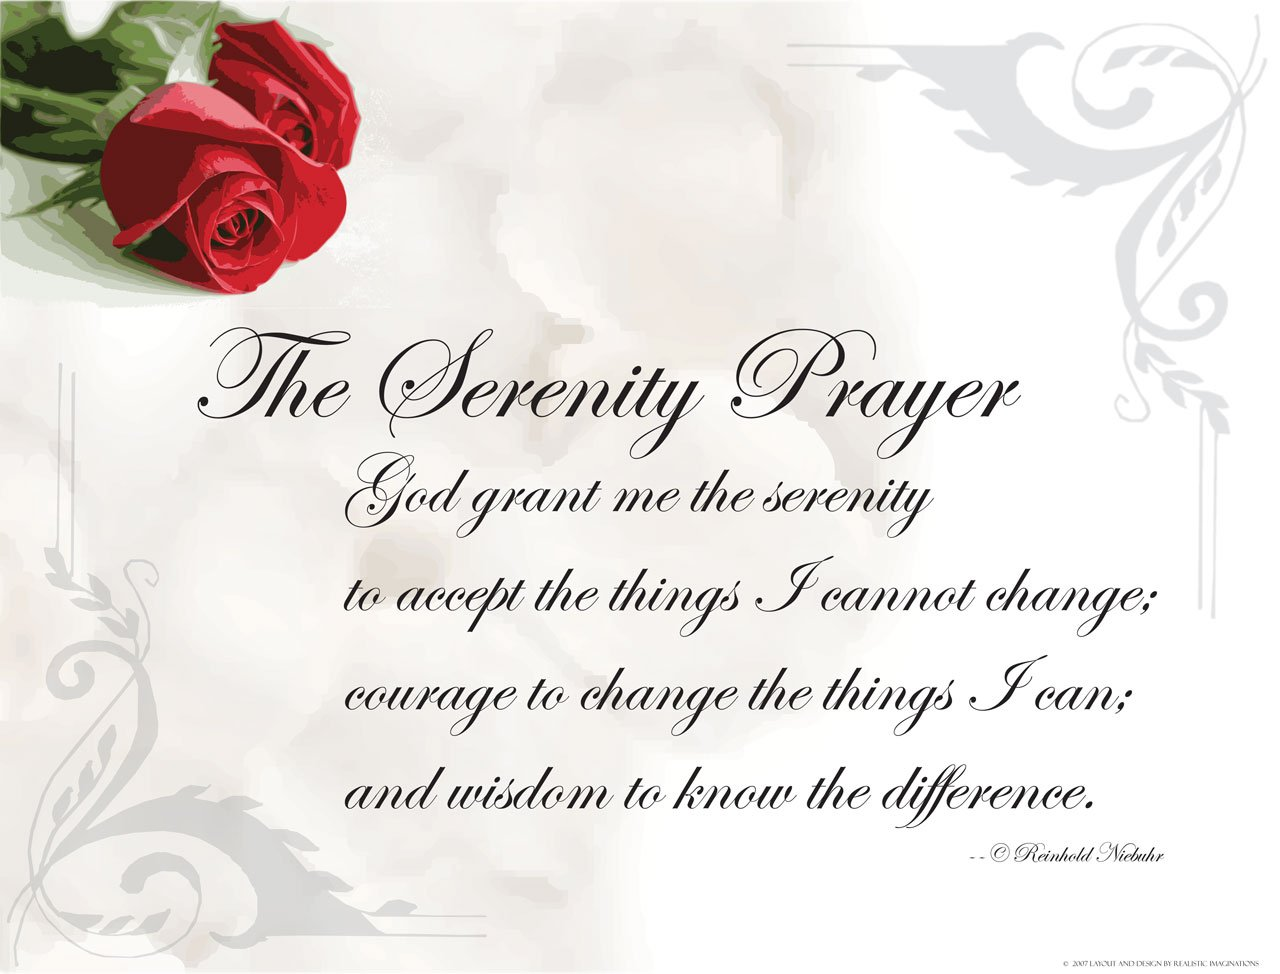 The Serenity Prayer Wallpaper   Christian Wallpapers and Backgrounds 1280x974